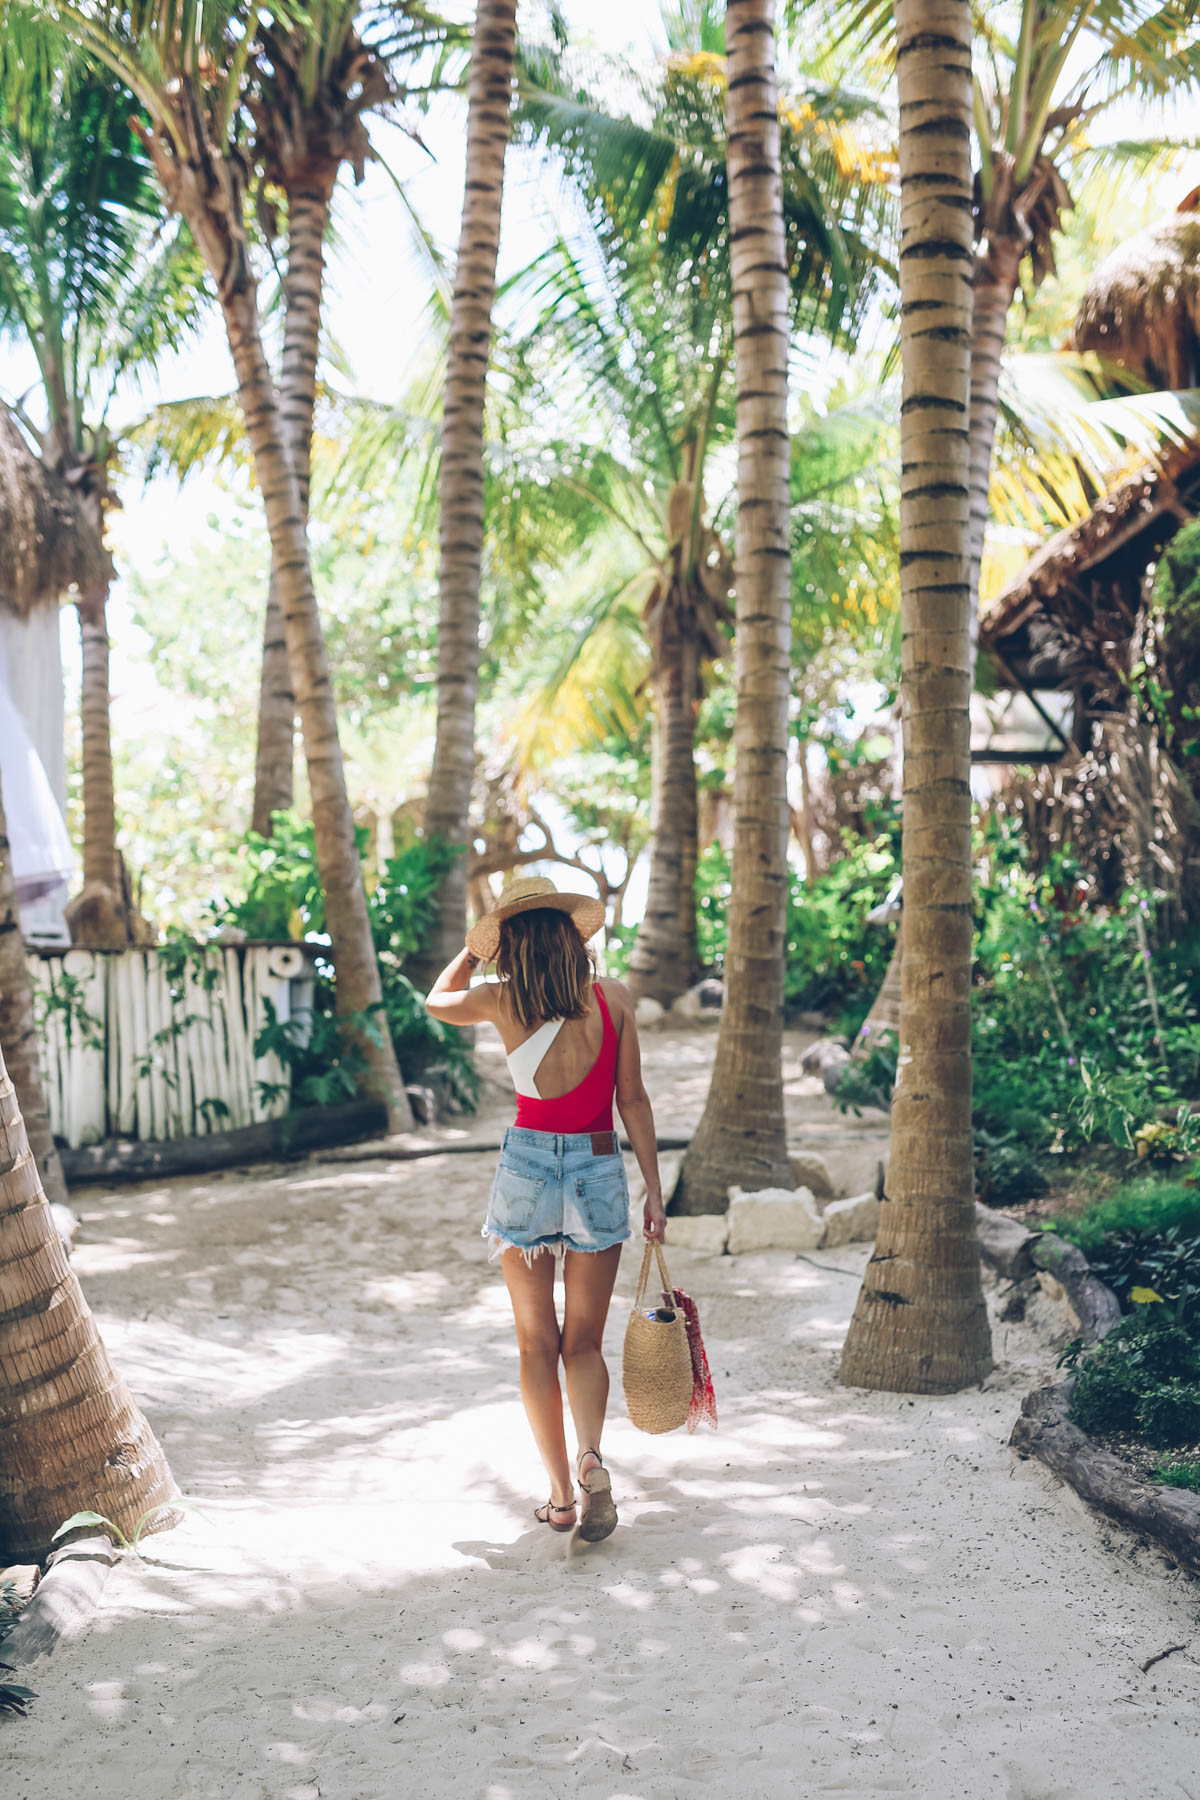 Jess Ann Kirby explores Tulum Mexico in cut-off shorts and a bright one piece bathing suit